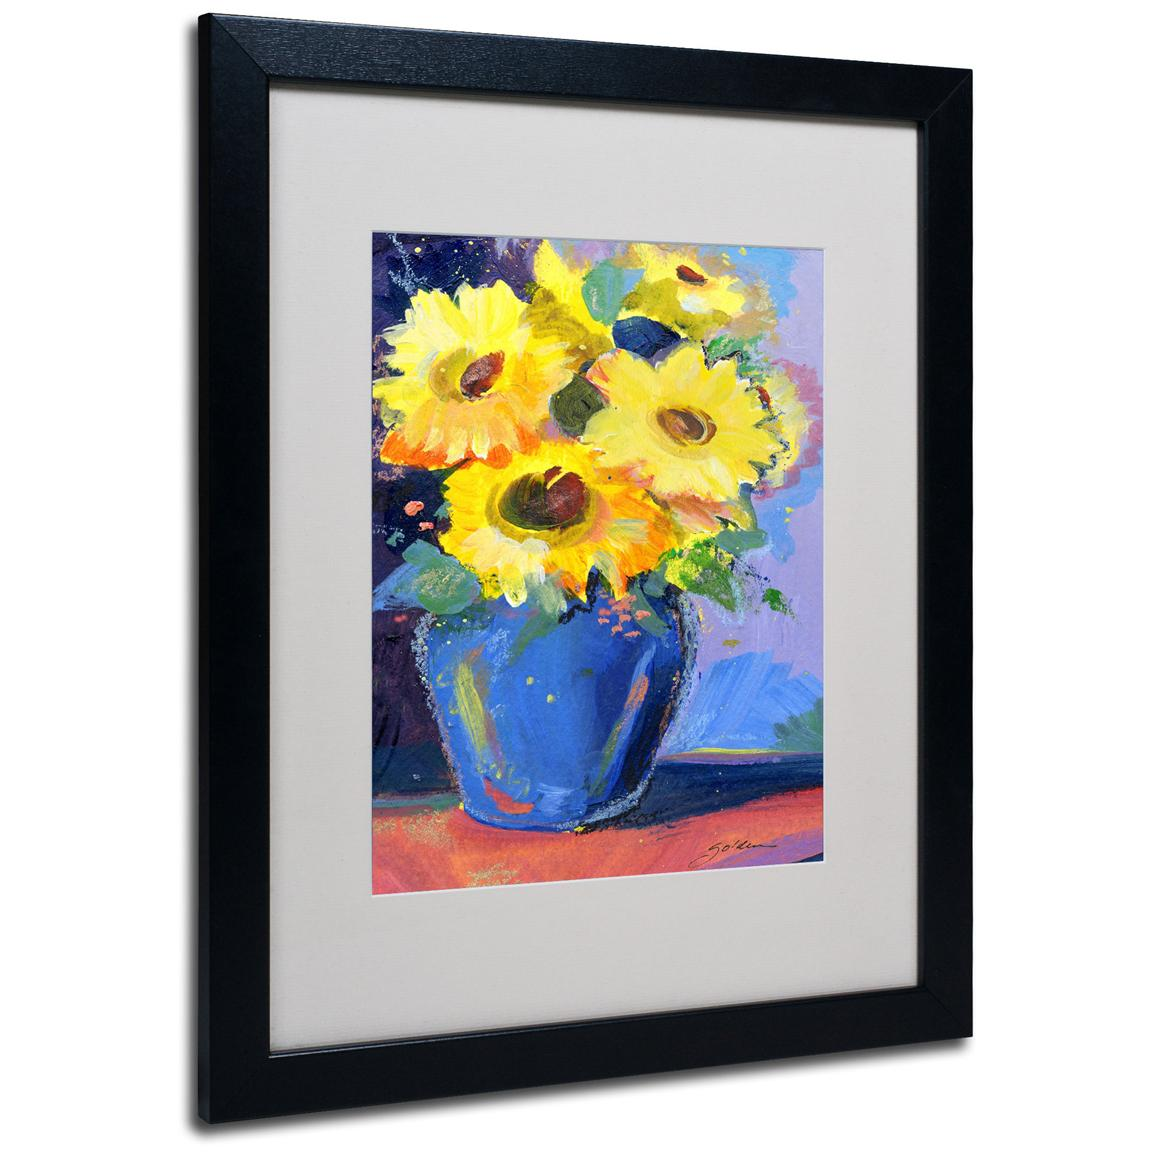 "Sheila Golden ""Sunflowers II"" Framed Matted Art, Black"